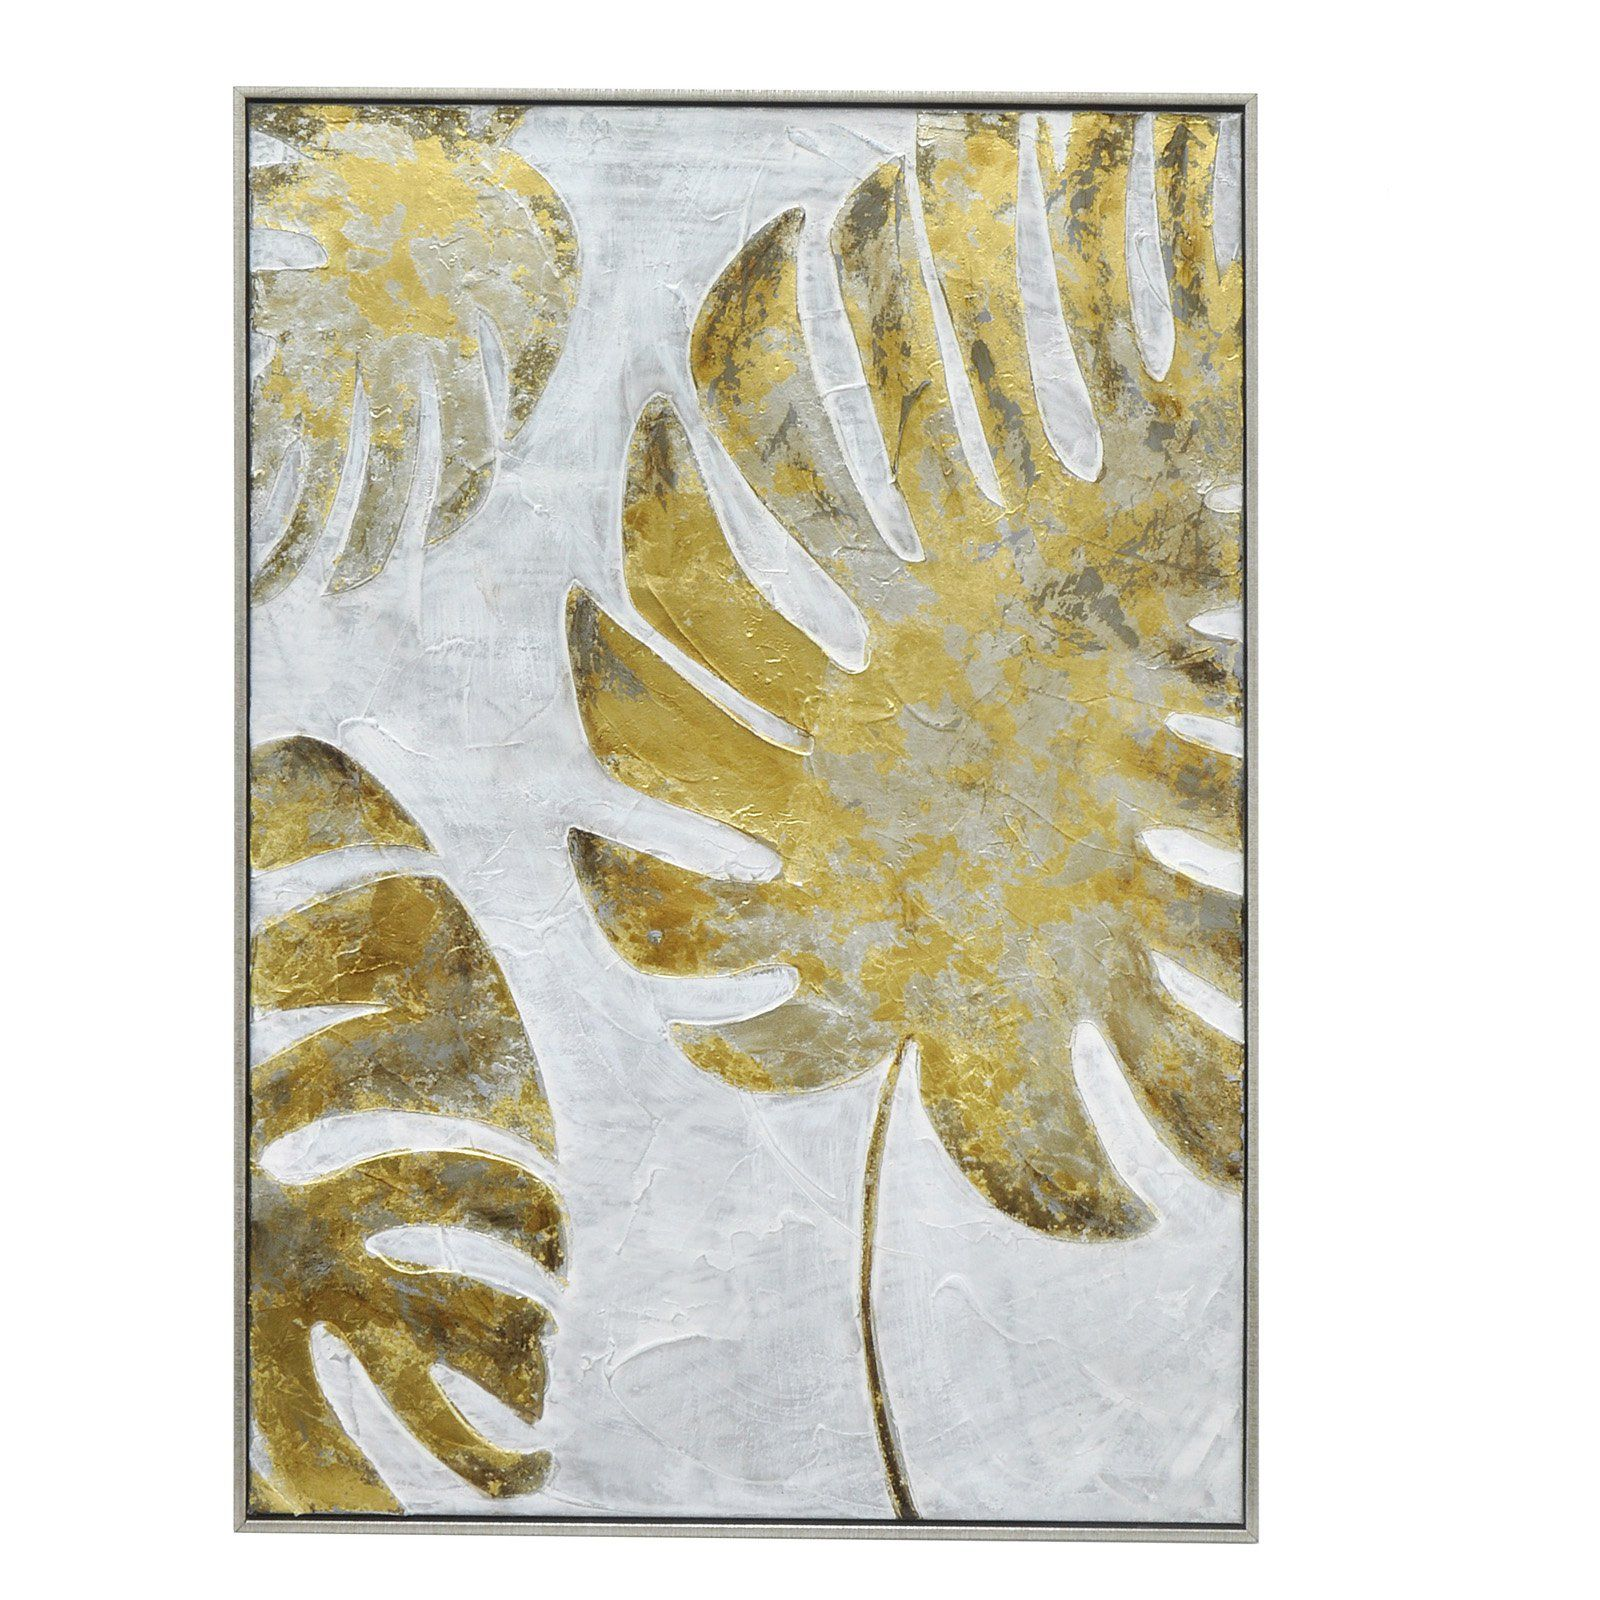 Three Hands Tropical Palm Frond Oil Painting Wall Art | from ...